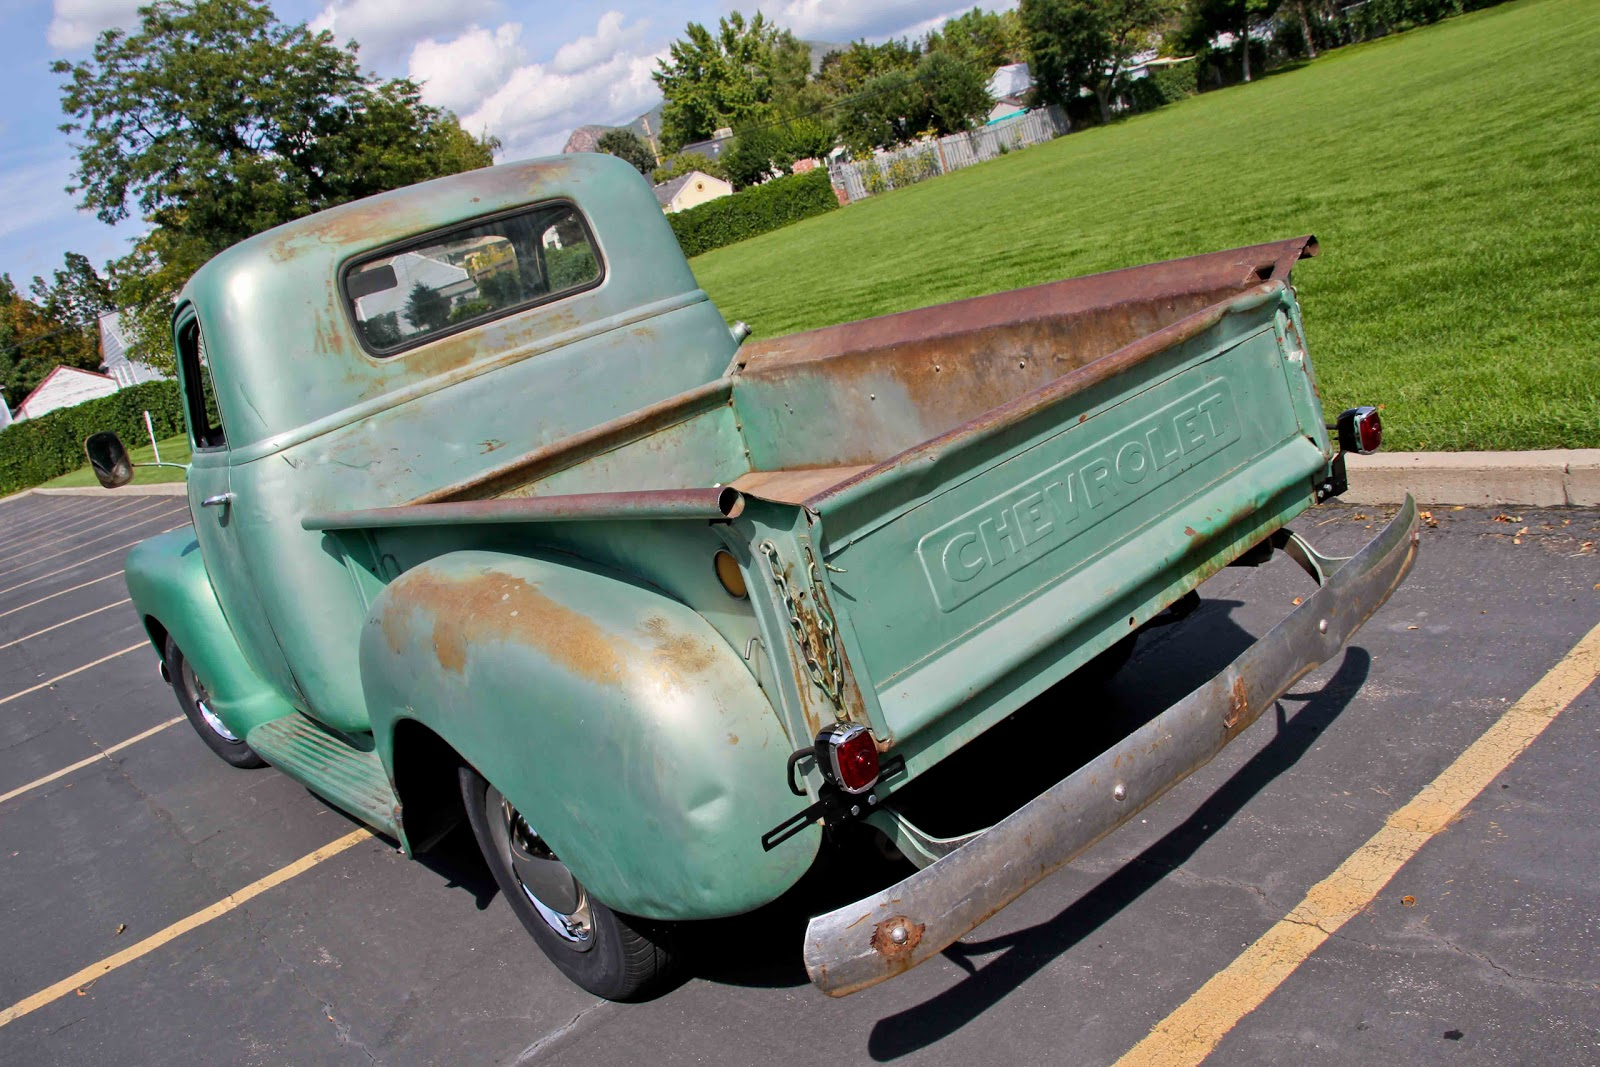 Up for sale i have a 1949 chevy 5 window pickup truck